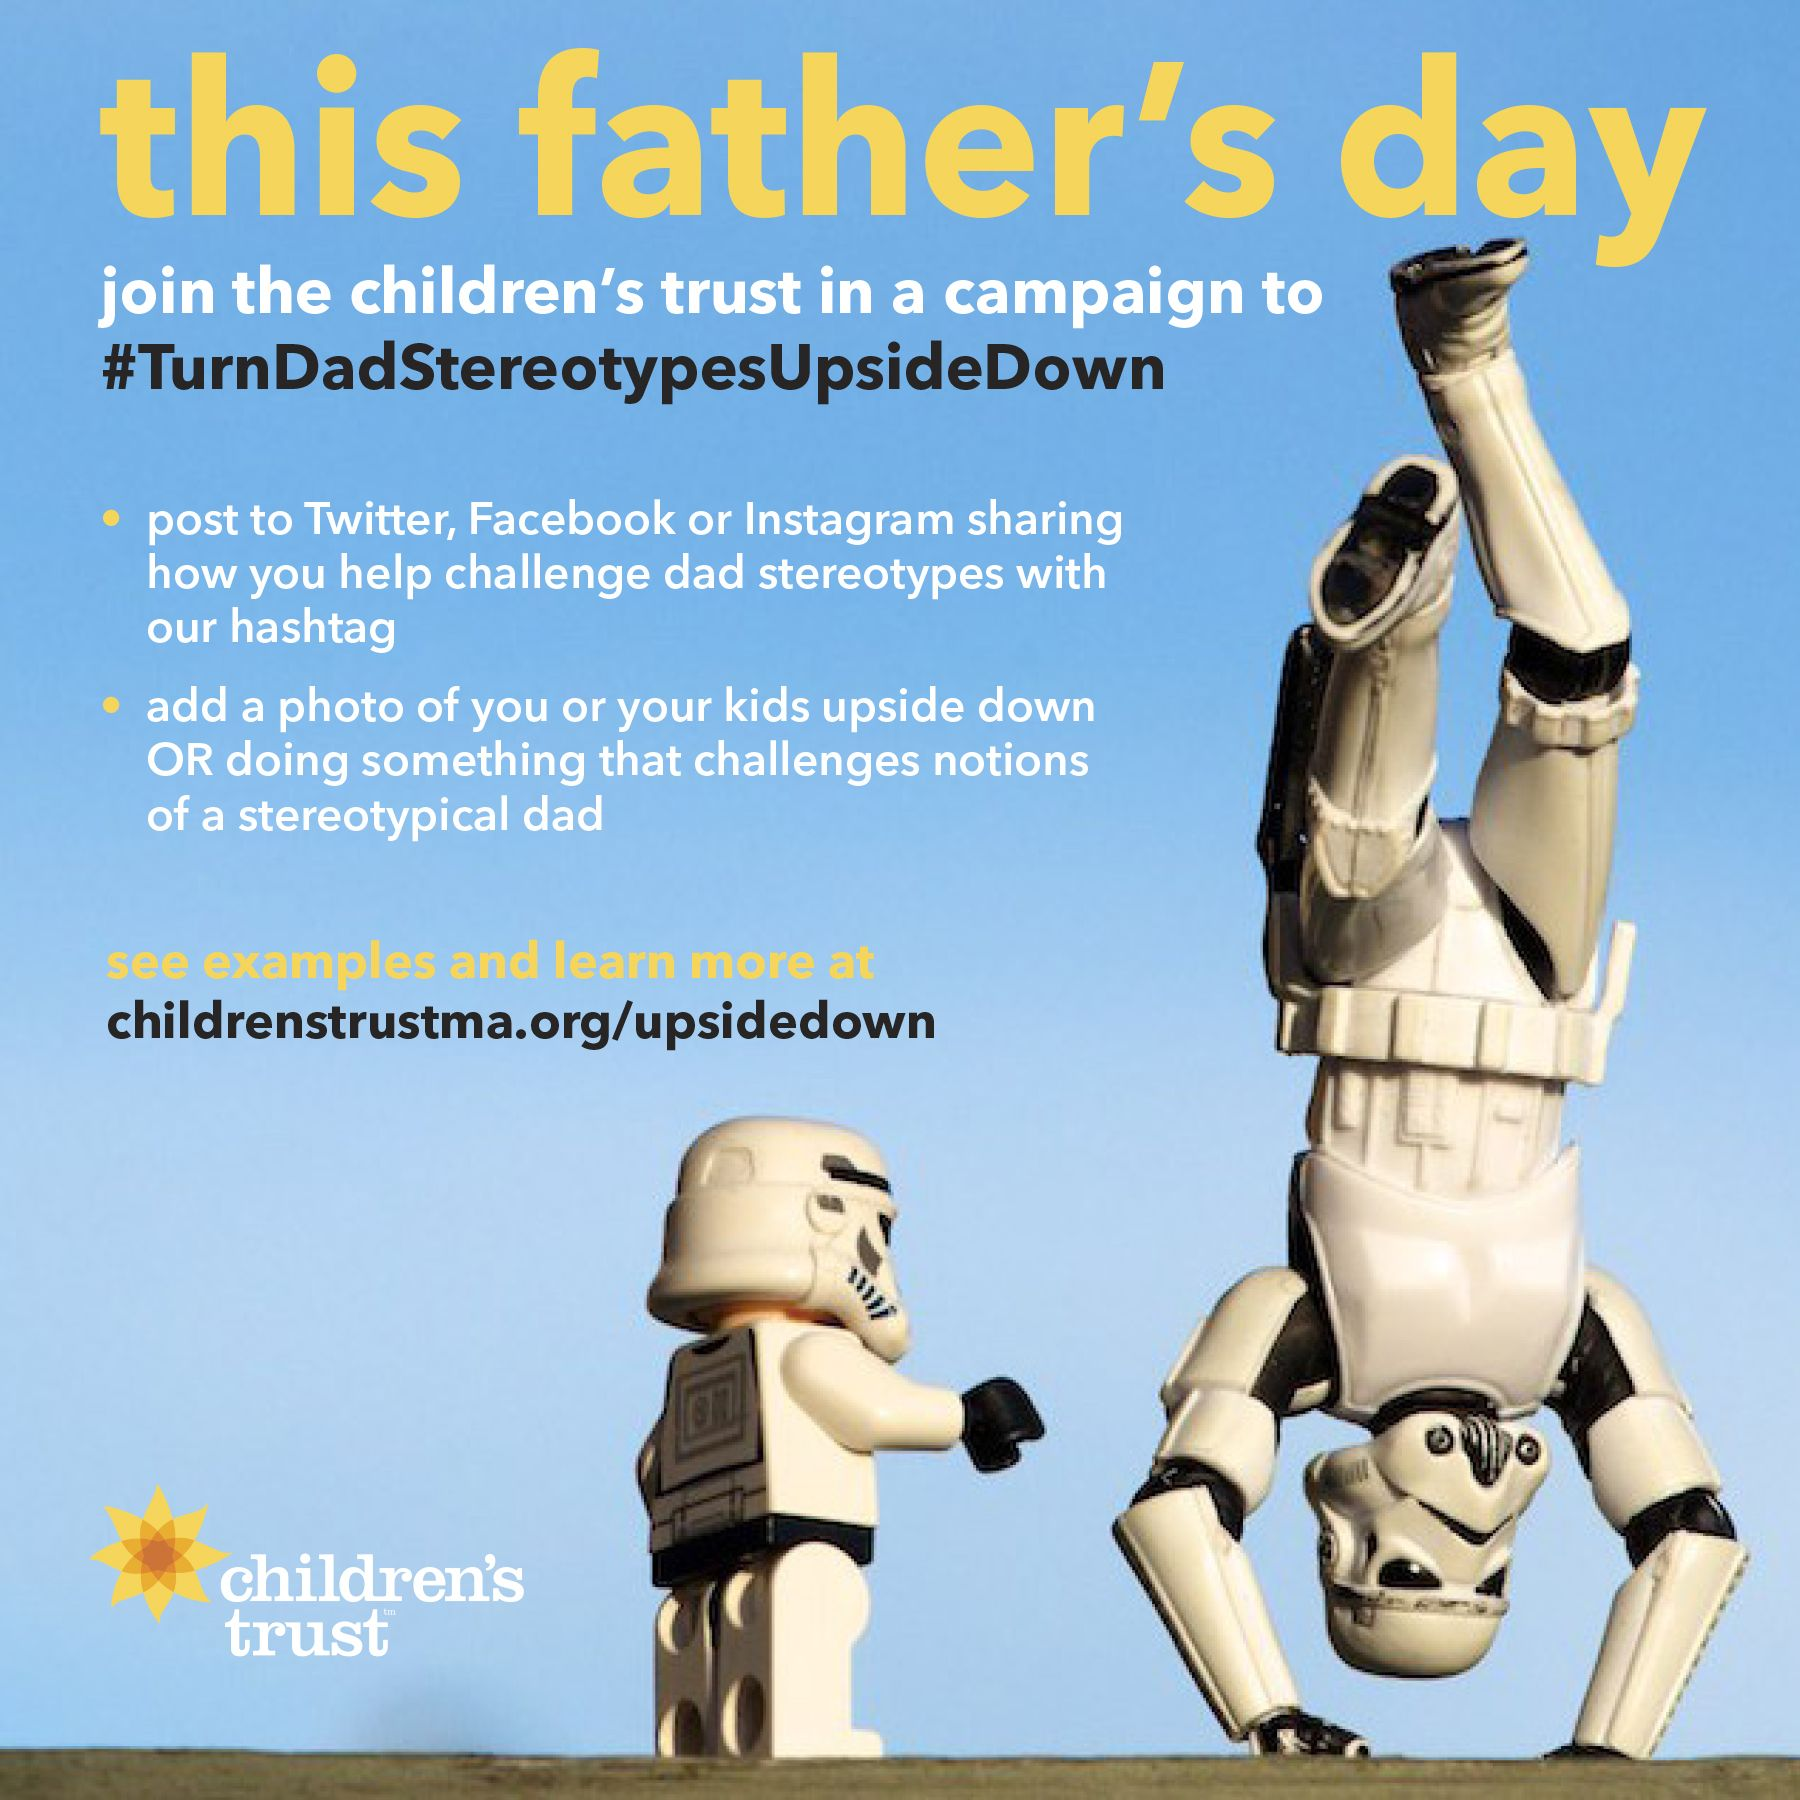 This #FathersDay, join the Children's Trust in a campaign to #TurnDadStereotypesUpsideDown.